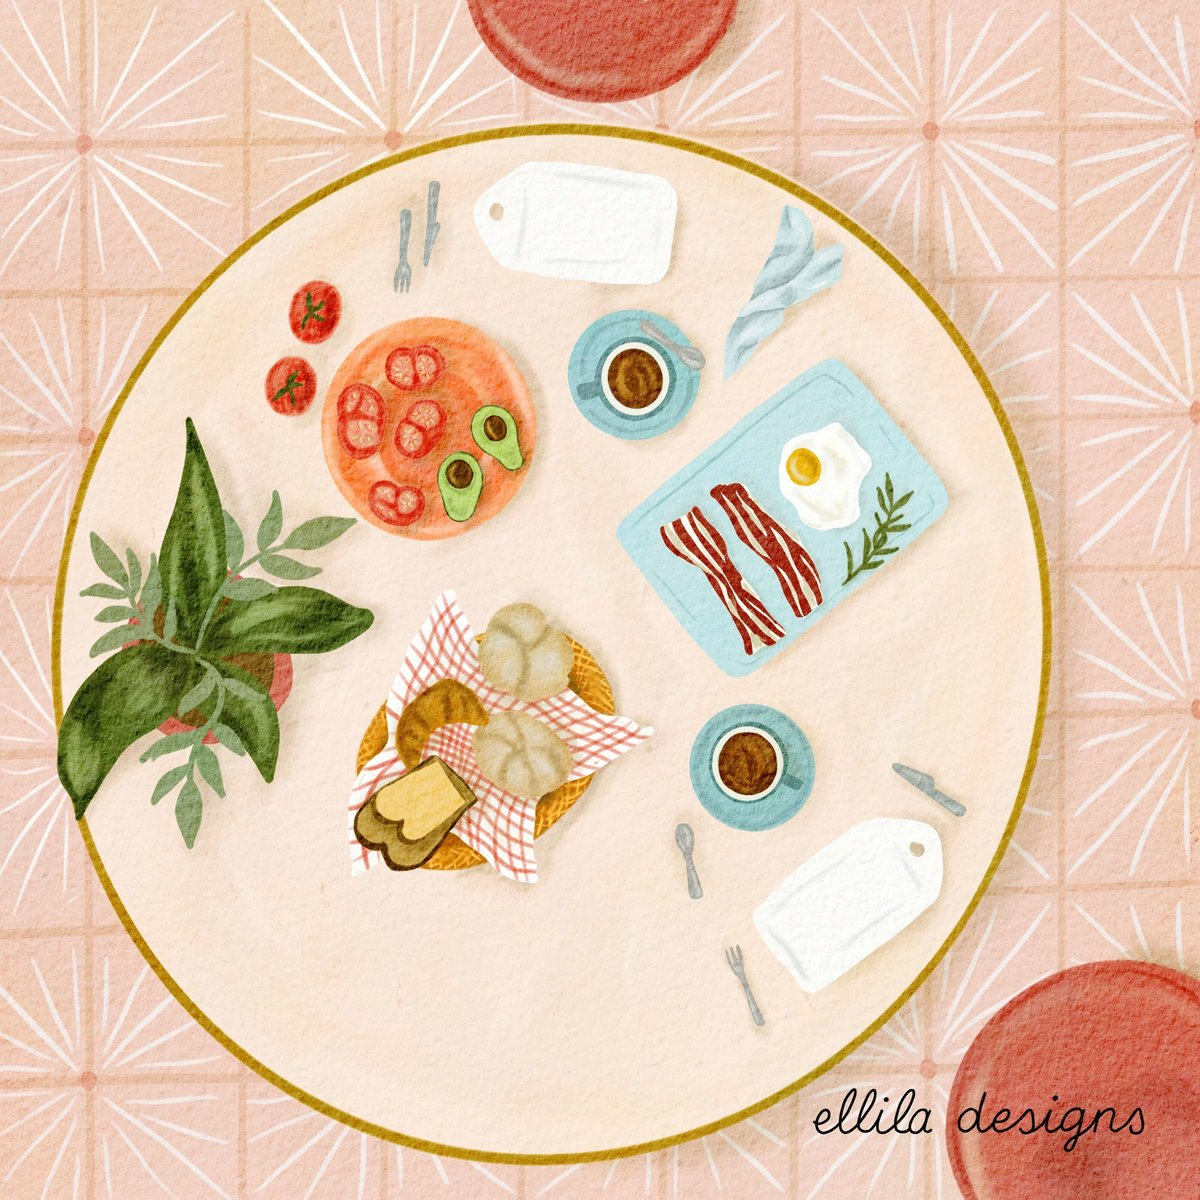 Brunch table illustration Ellila Designs